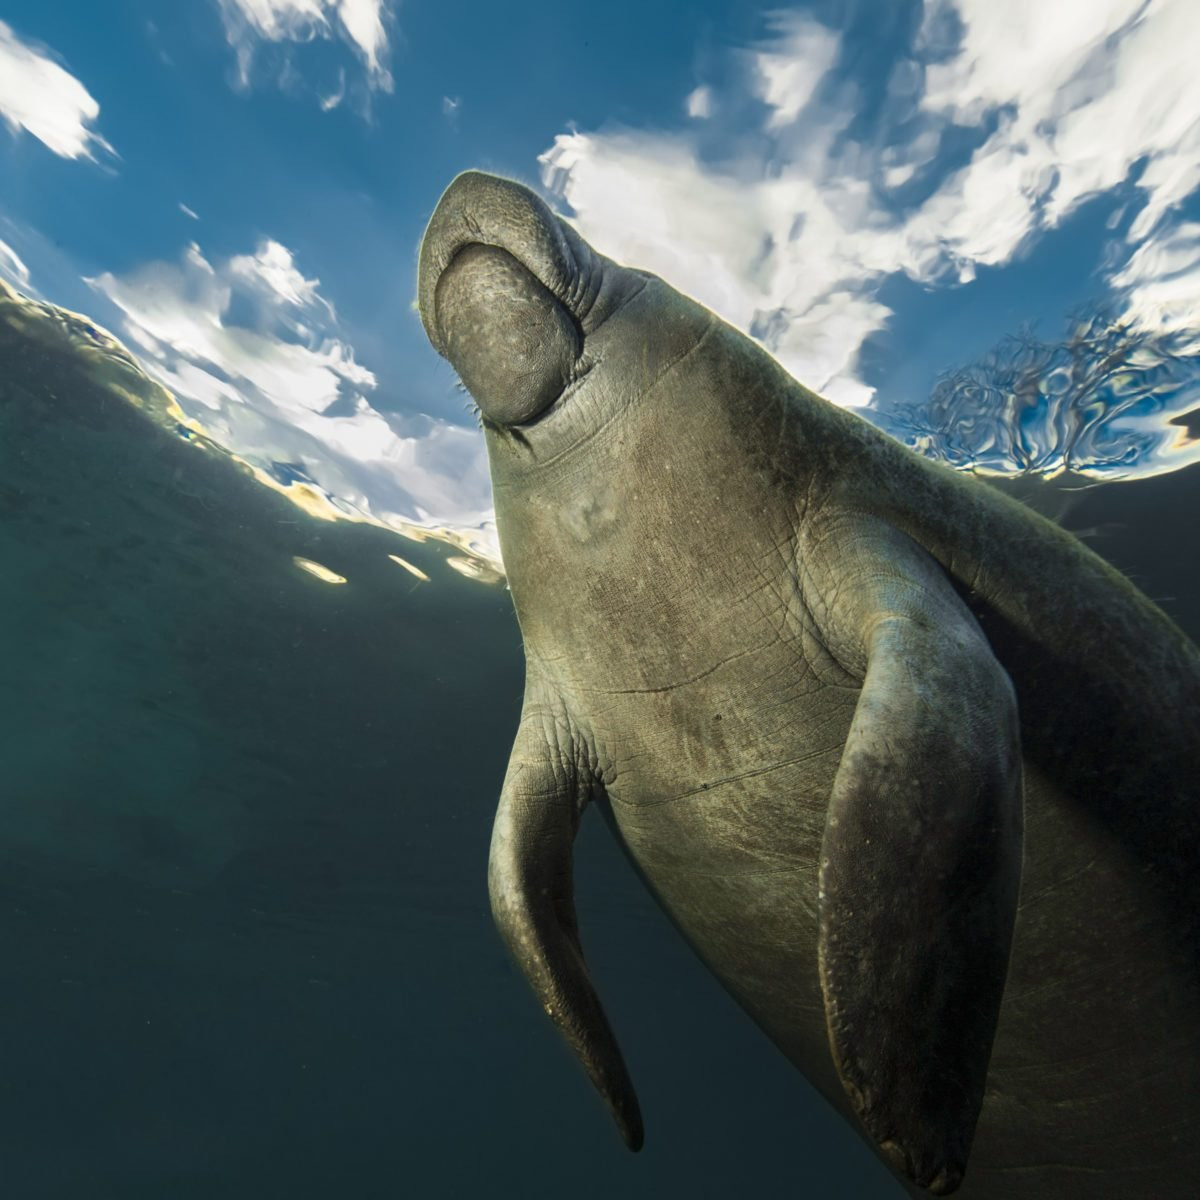 Our Favorite Manatee Photos of All Time